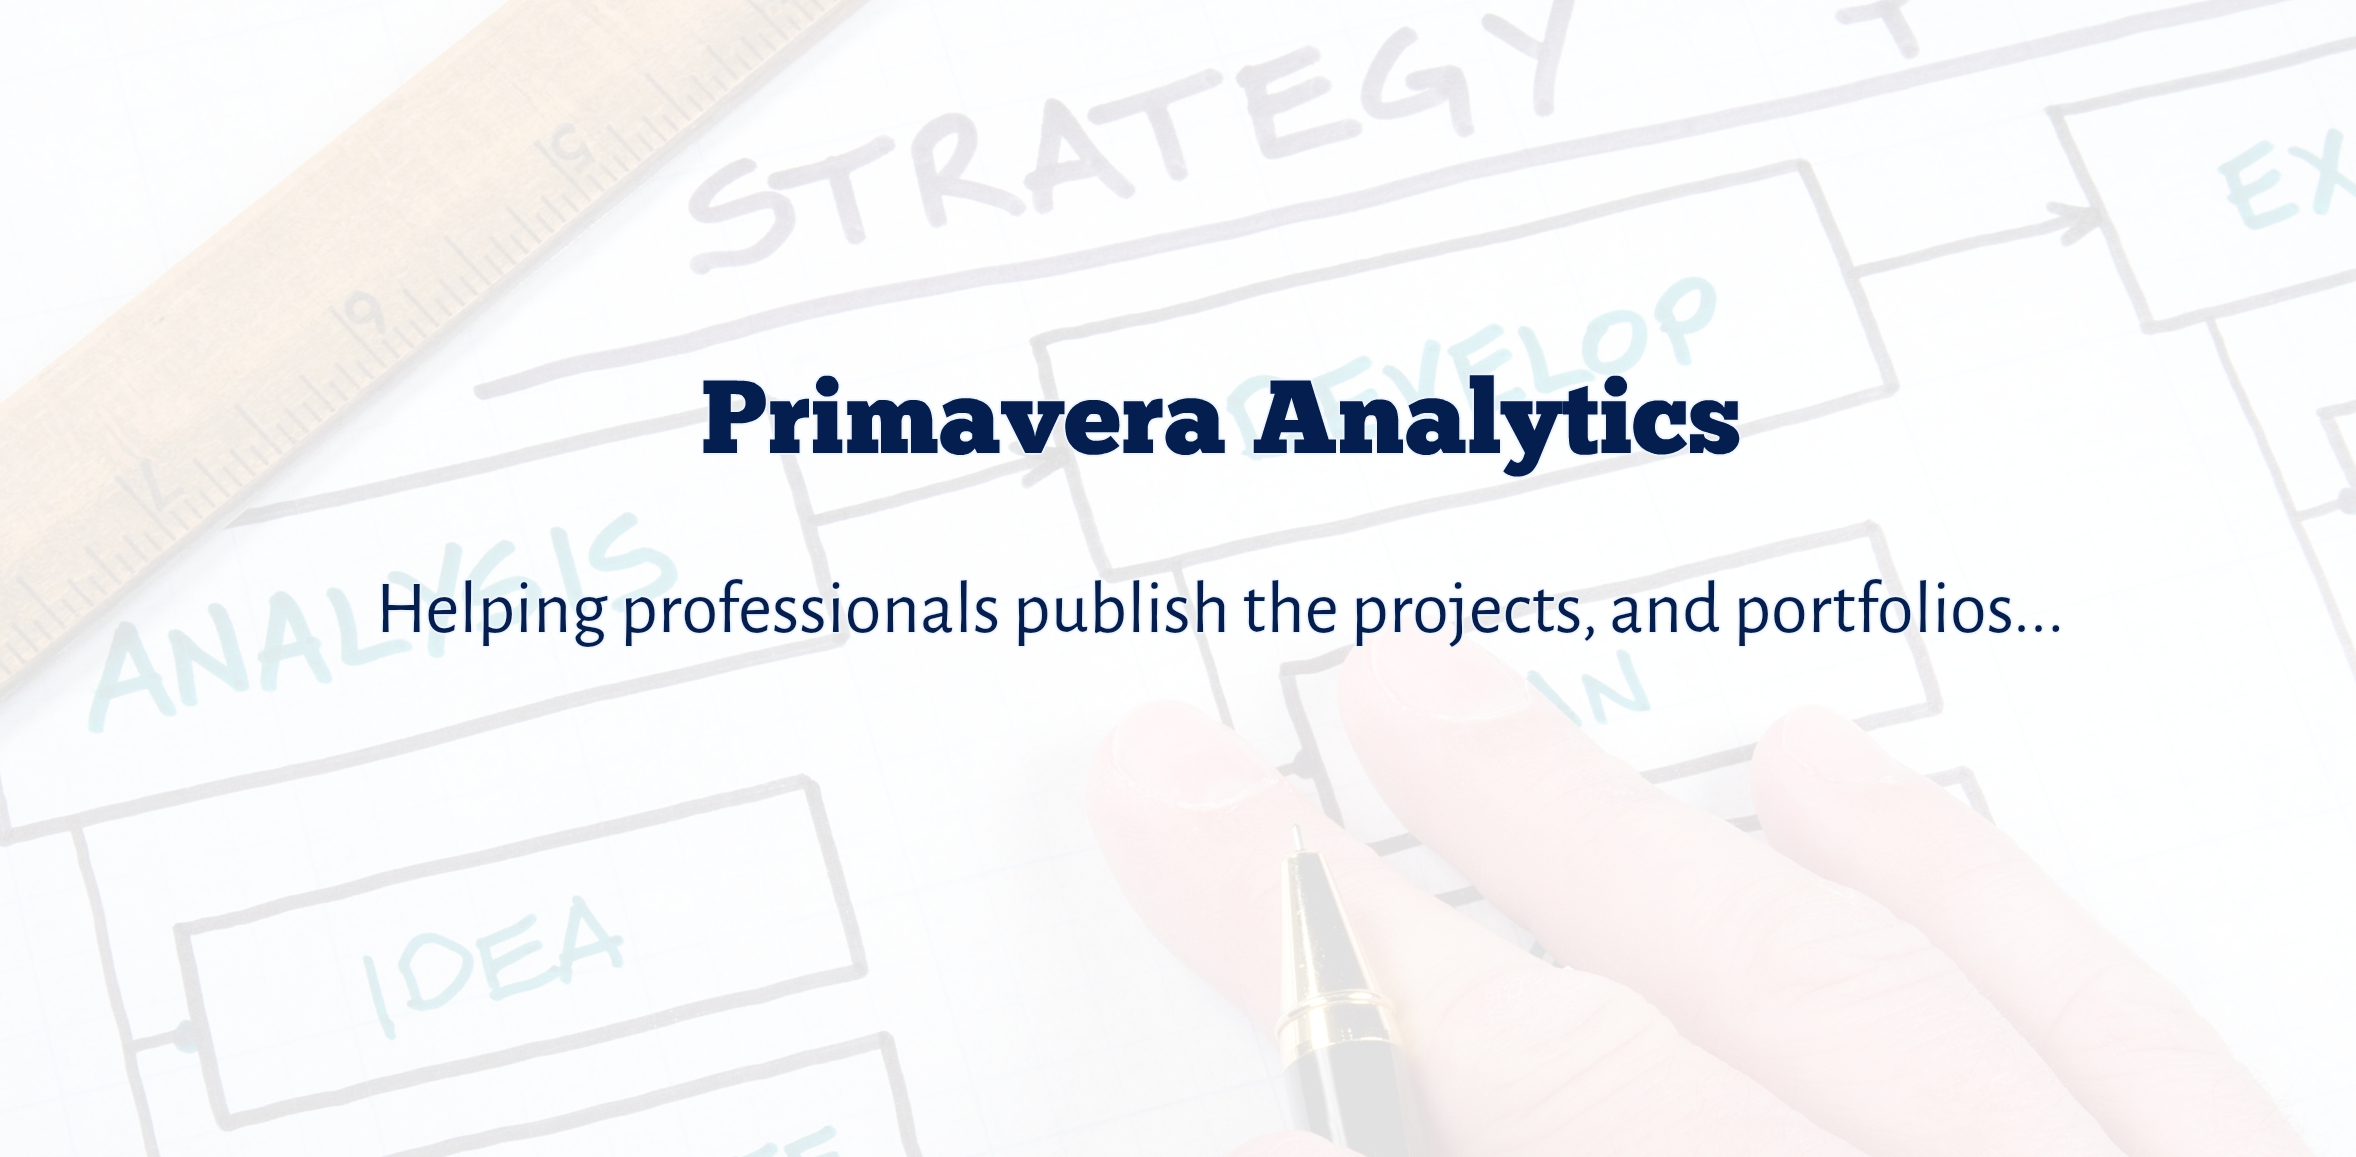 Primavera Analytics